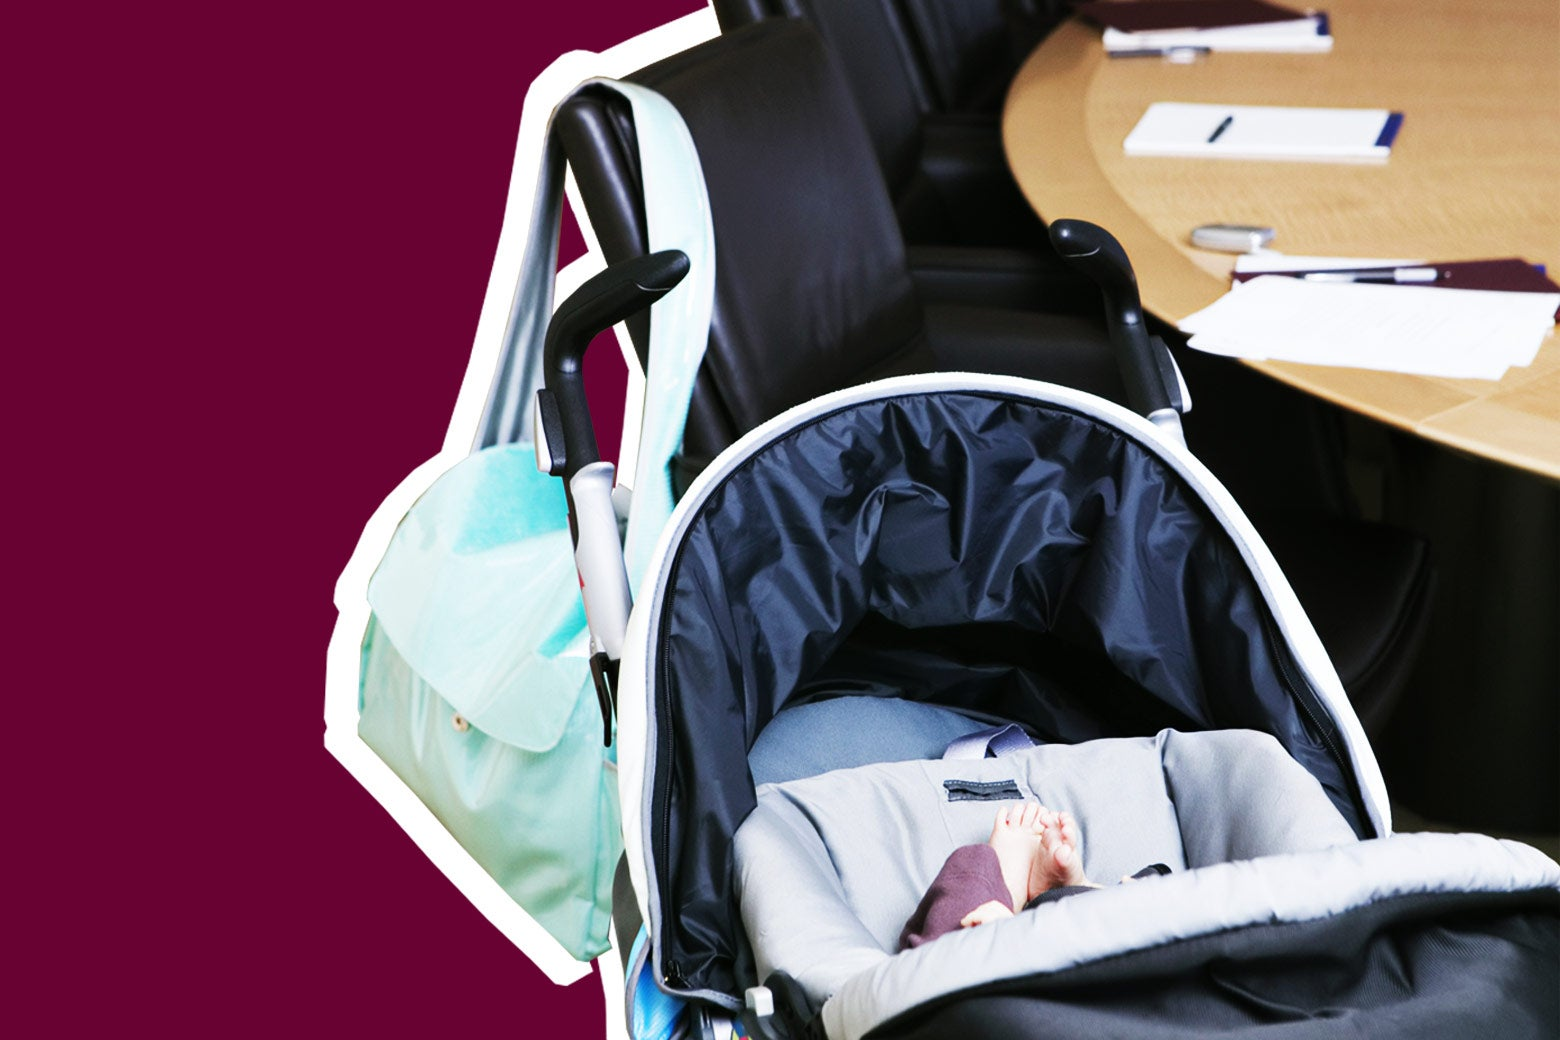 Stroller with an infant in it next to a corporate meeting table.